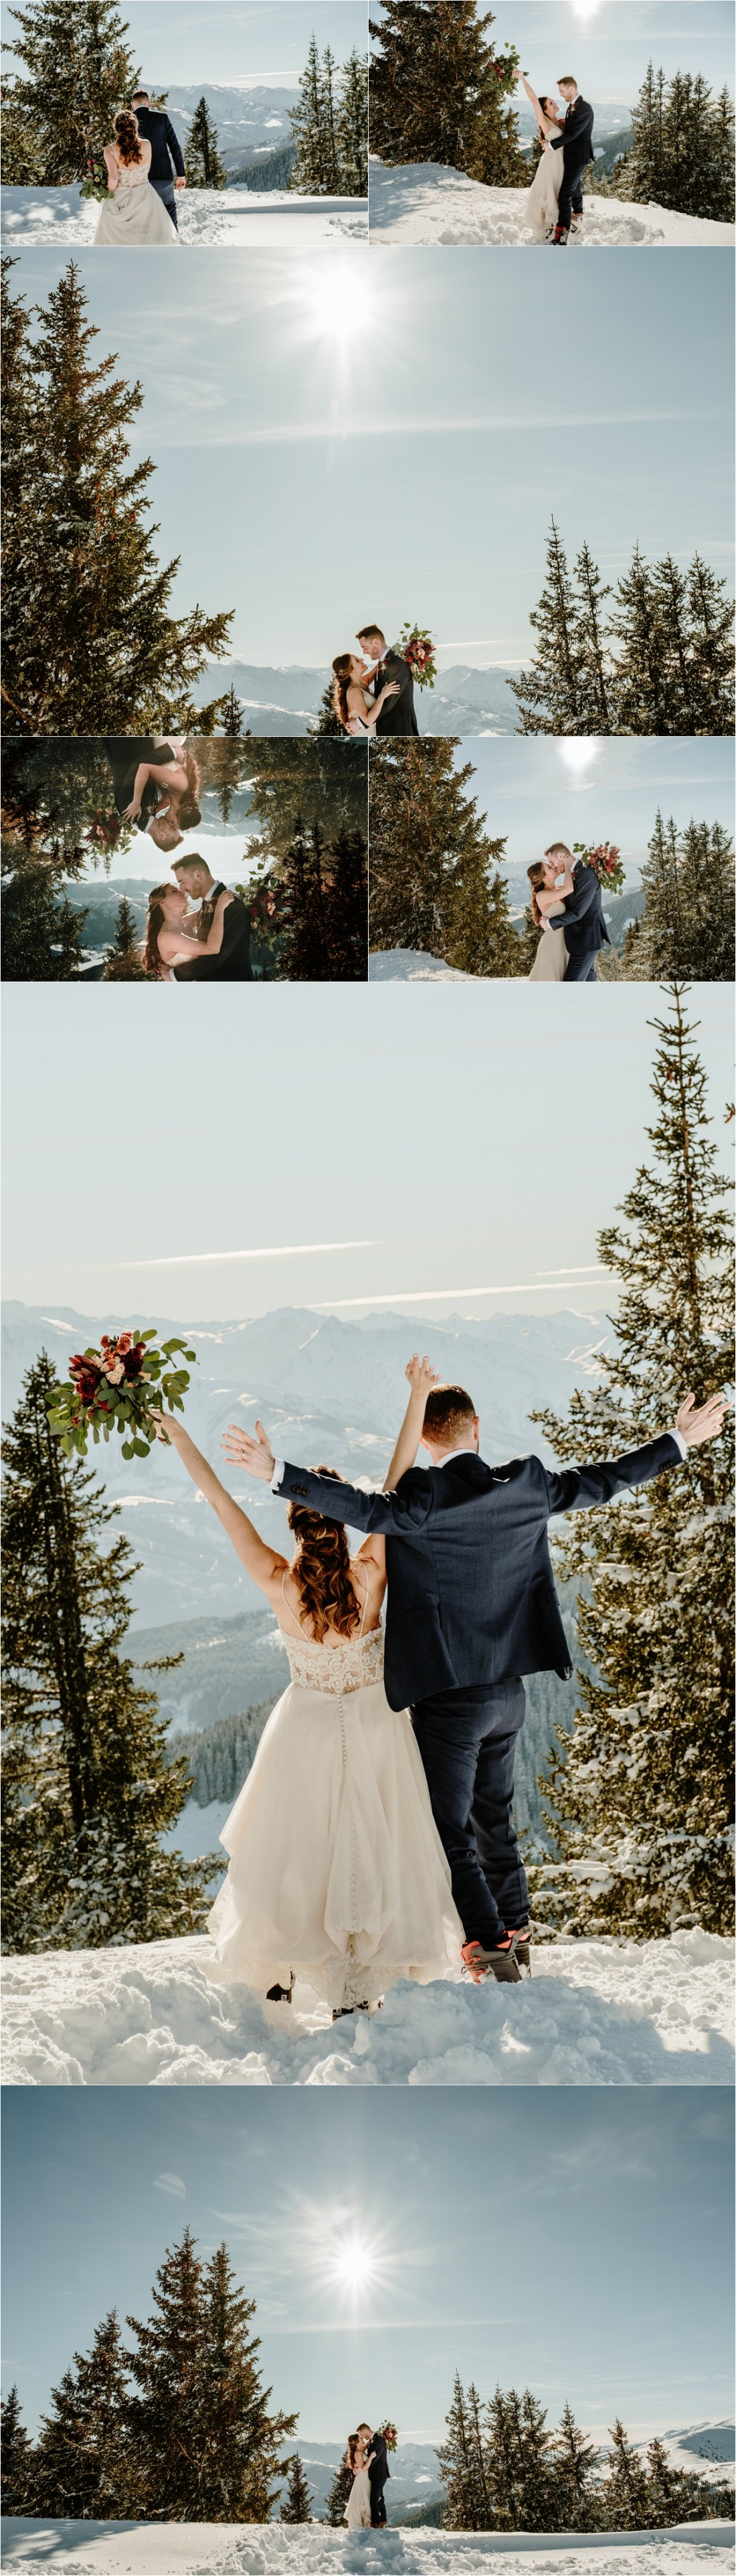 Bride & Groom Gerry-Rae & Nick celebrate their wedding on the top of the mountain in Zell am See Austria by Wild Connections Photography